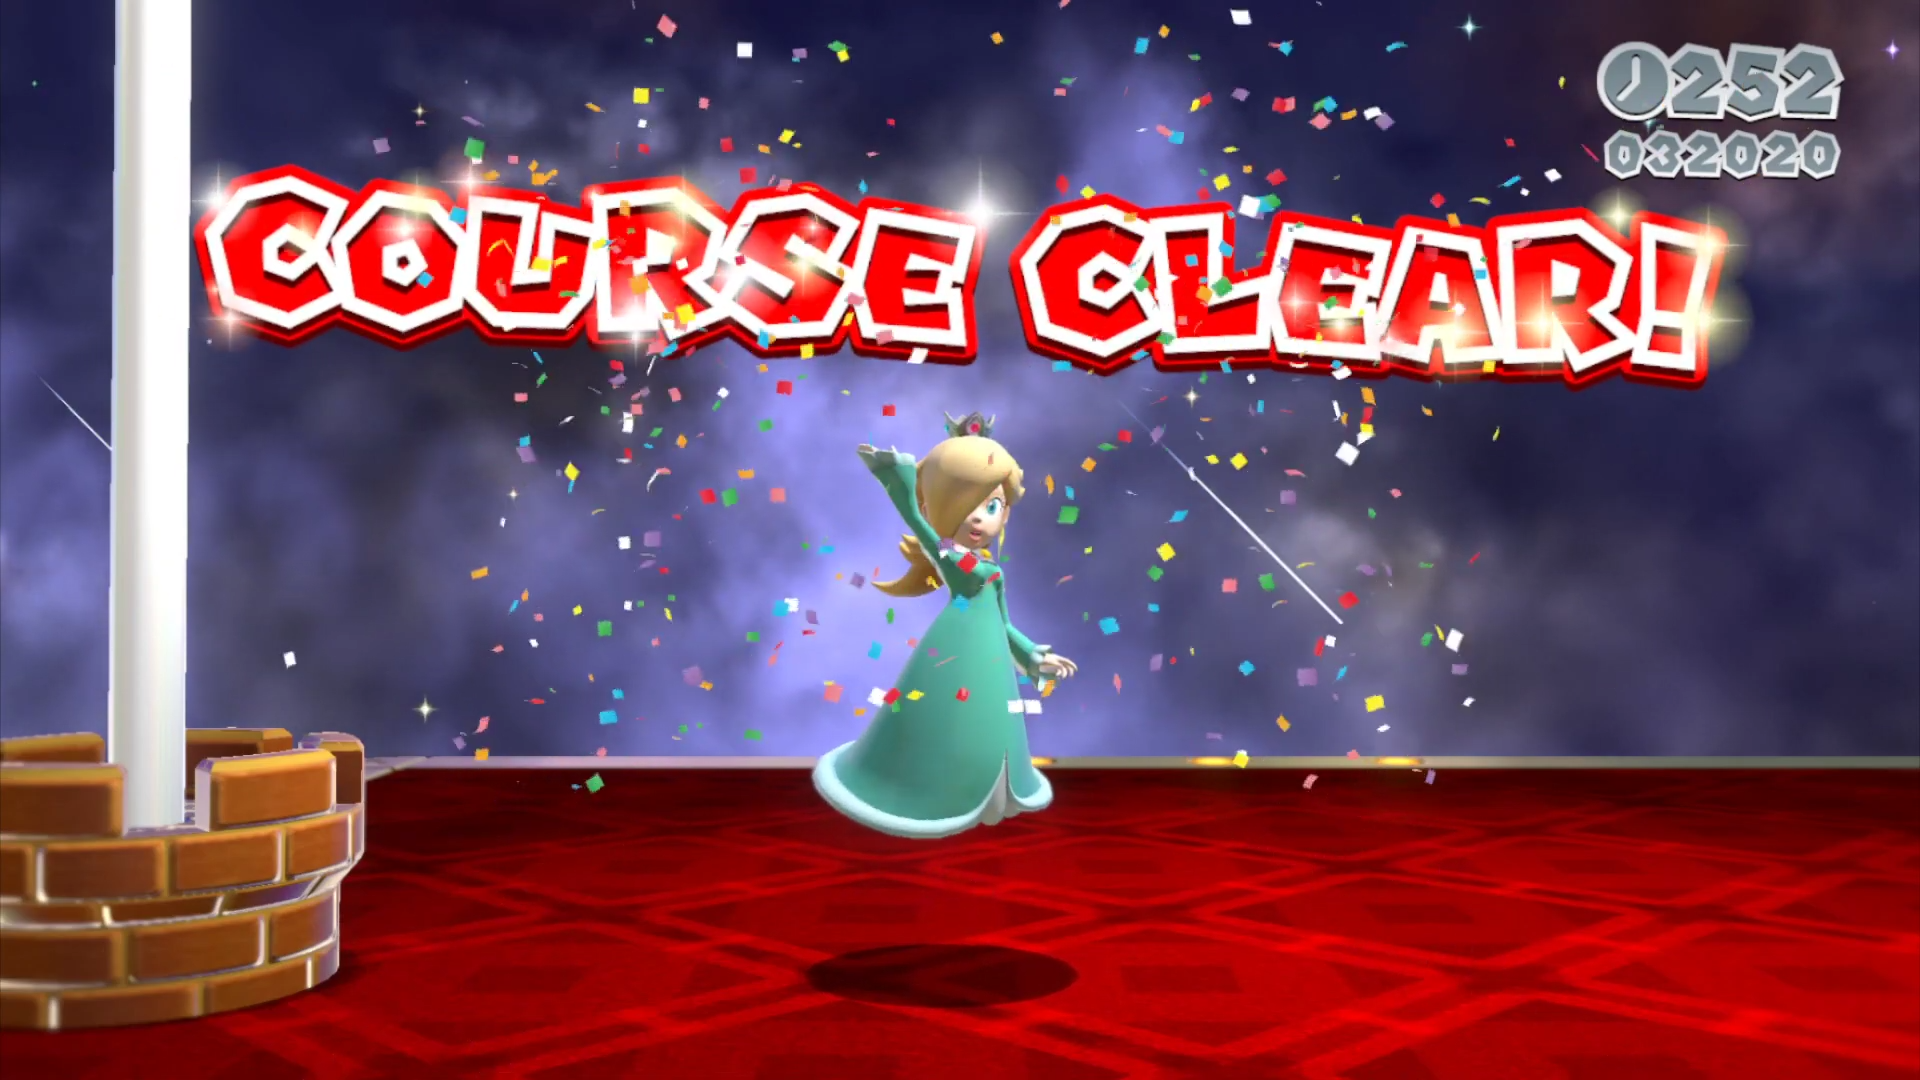 Rosalina completes a level in Super Mario 3D World + Bowser's Fury